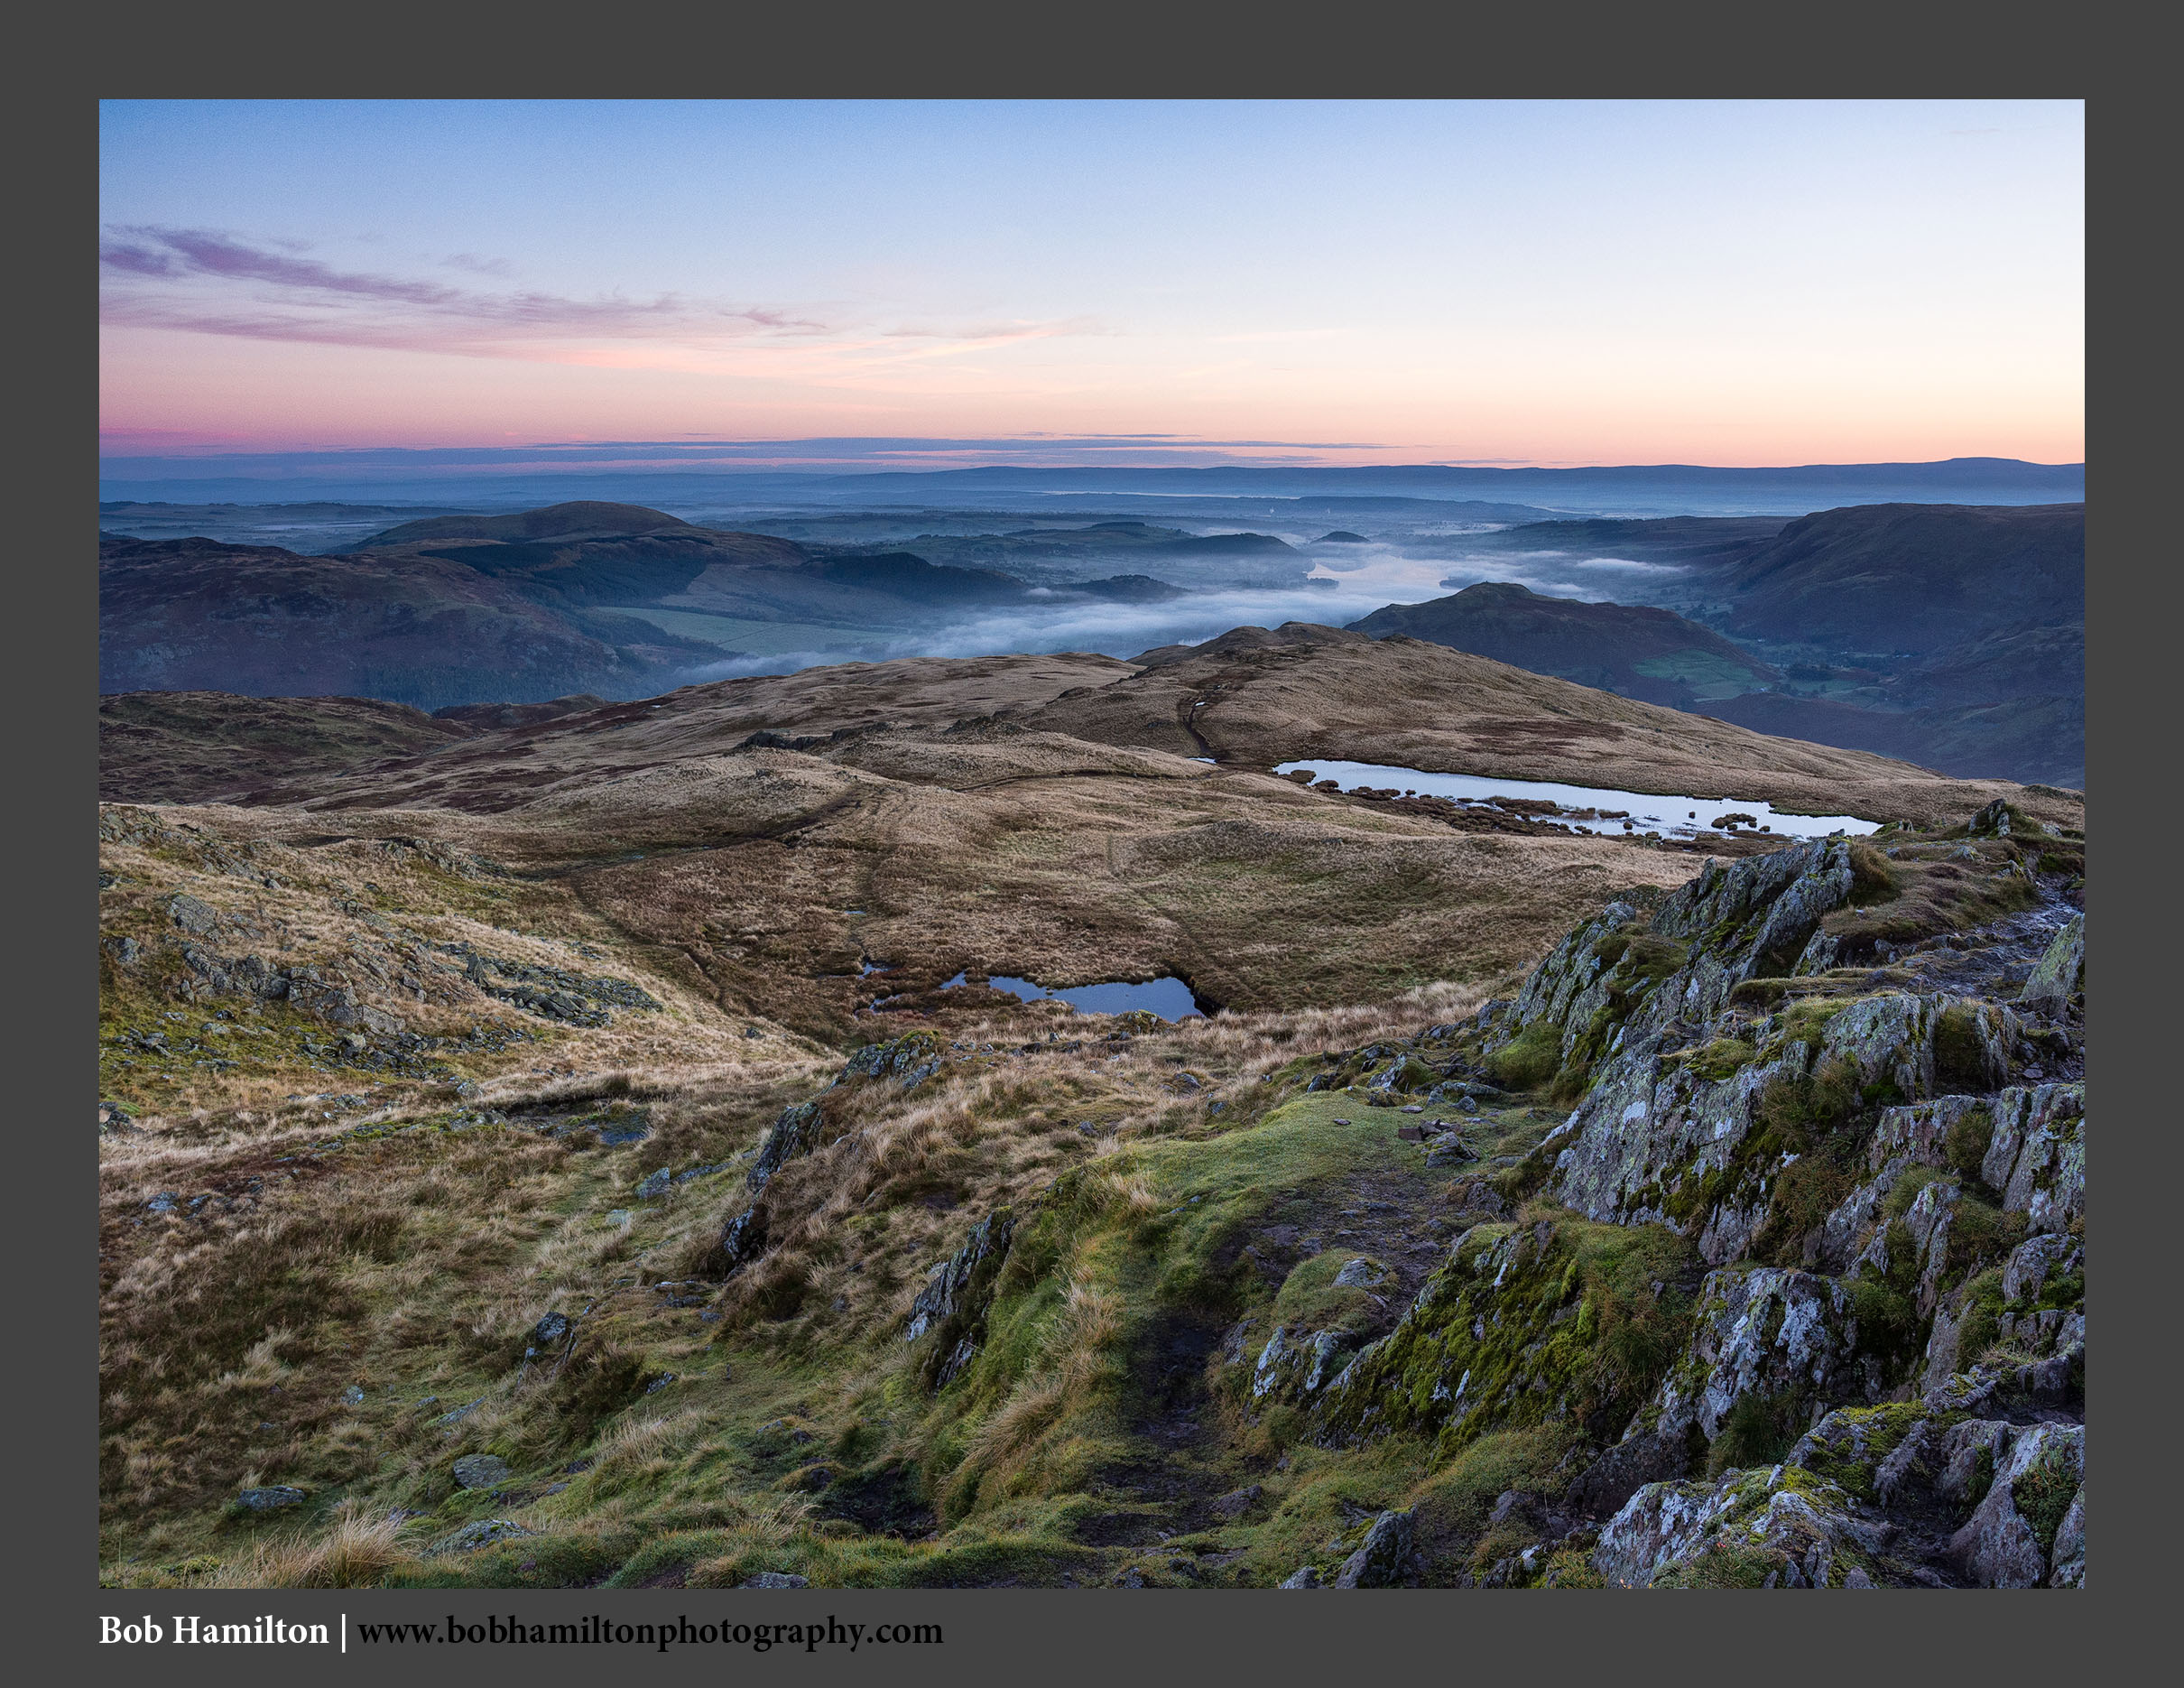 O126418 Dawn breaking on Ullswater and the Pennines from Place Fell